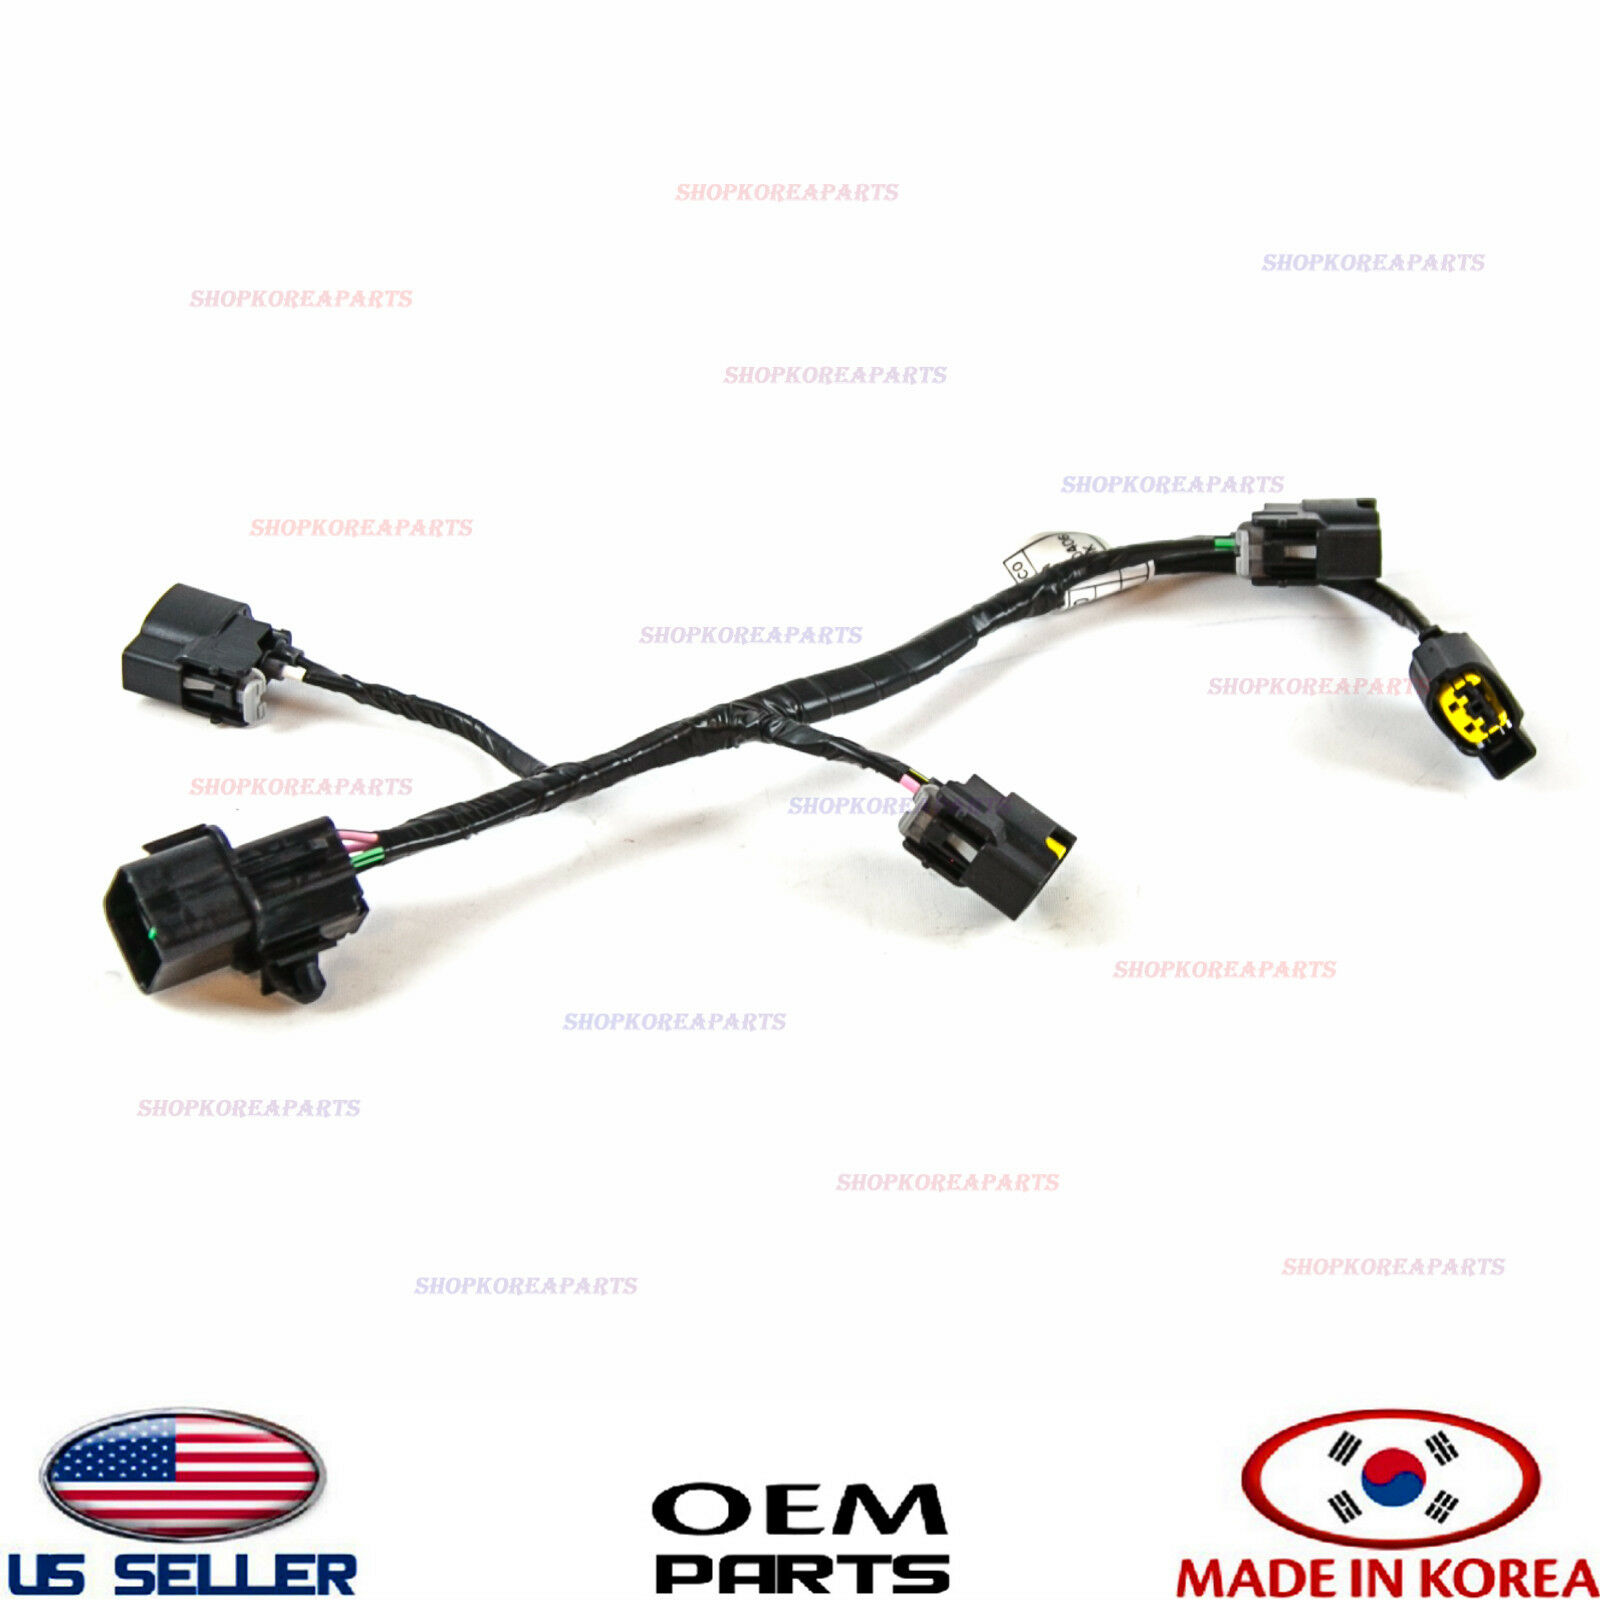 2012 elantra ignition coil wiring harness   41 wiring